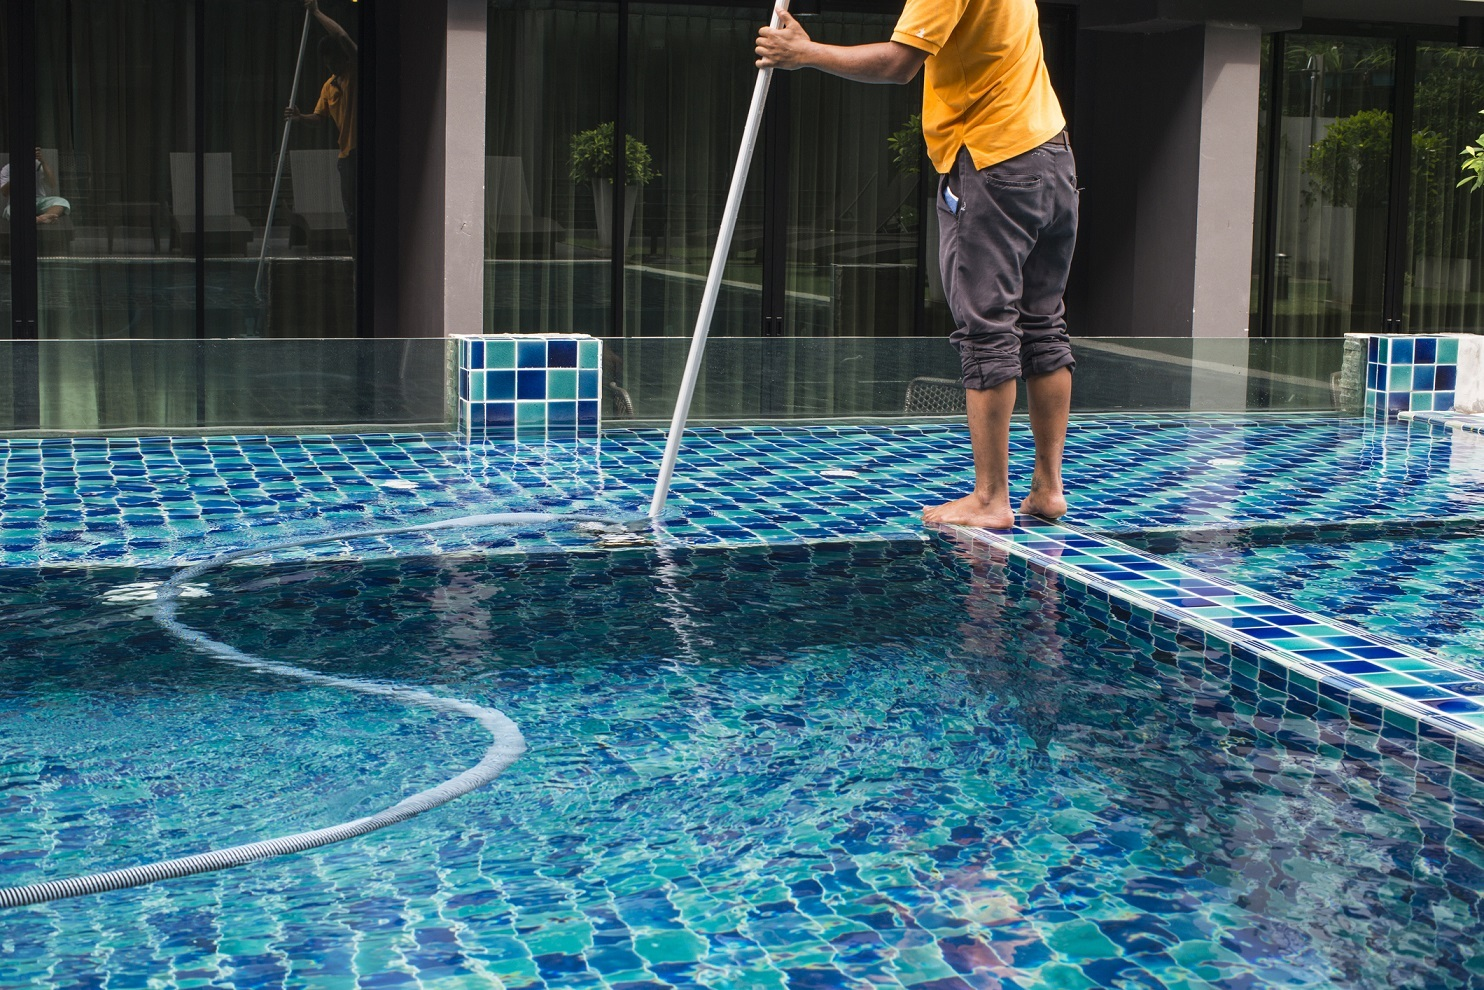 Man cleans a pool